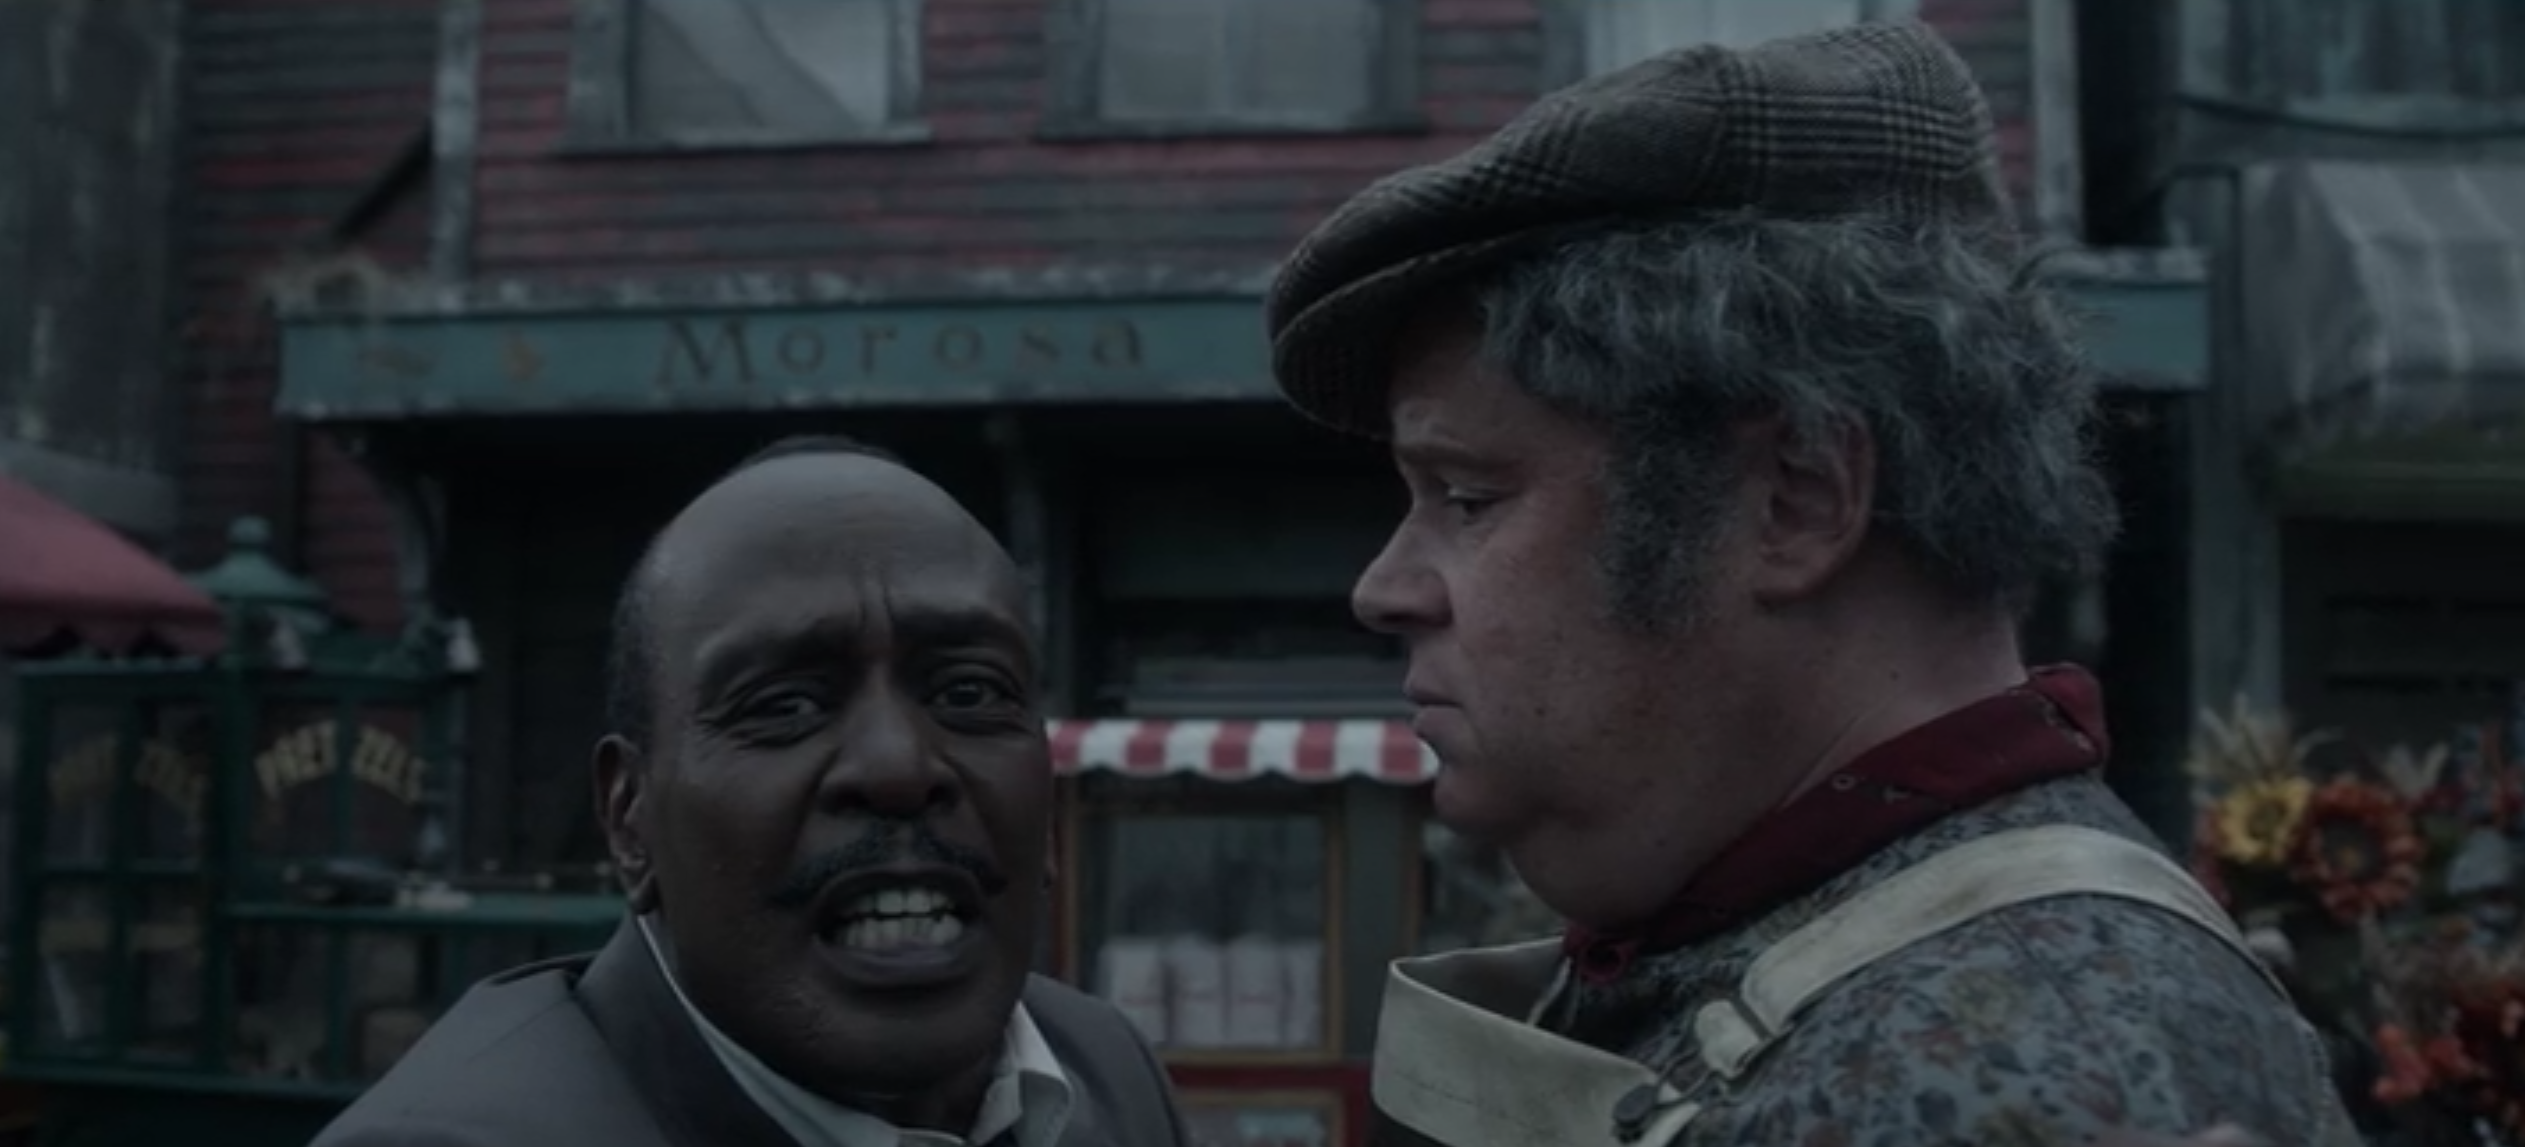 K. Todd Freeman as Mr. Poe alongside Daniel Handler, i.e. the real Lemony Snicket.